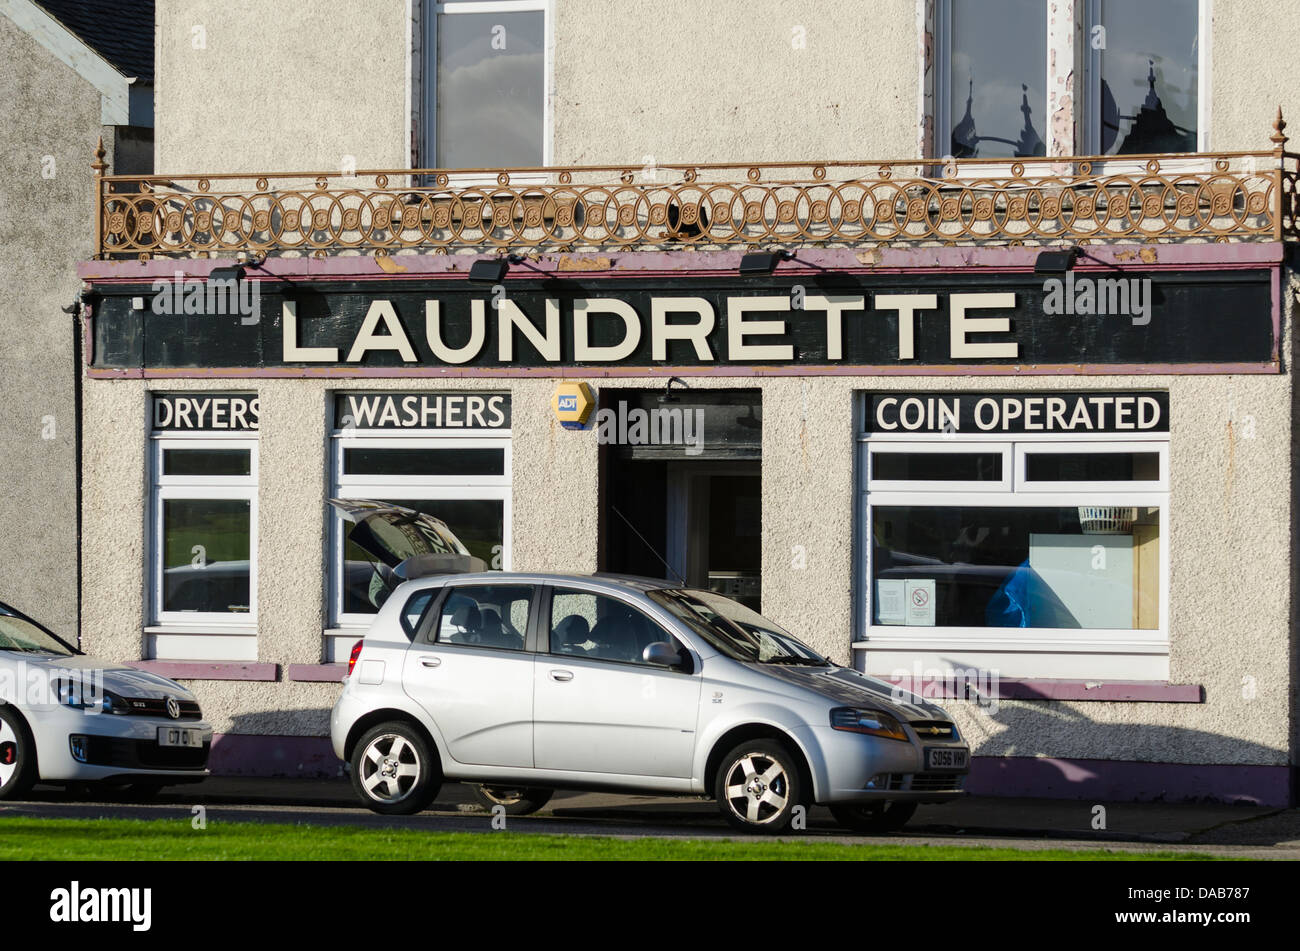 Laundrette Campbeltown Argyll Scotland previously a pub called the Davaar Bar - Stock Image